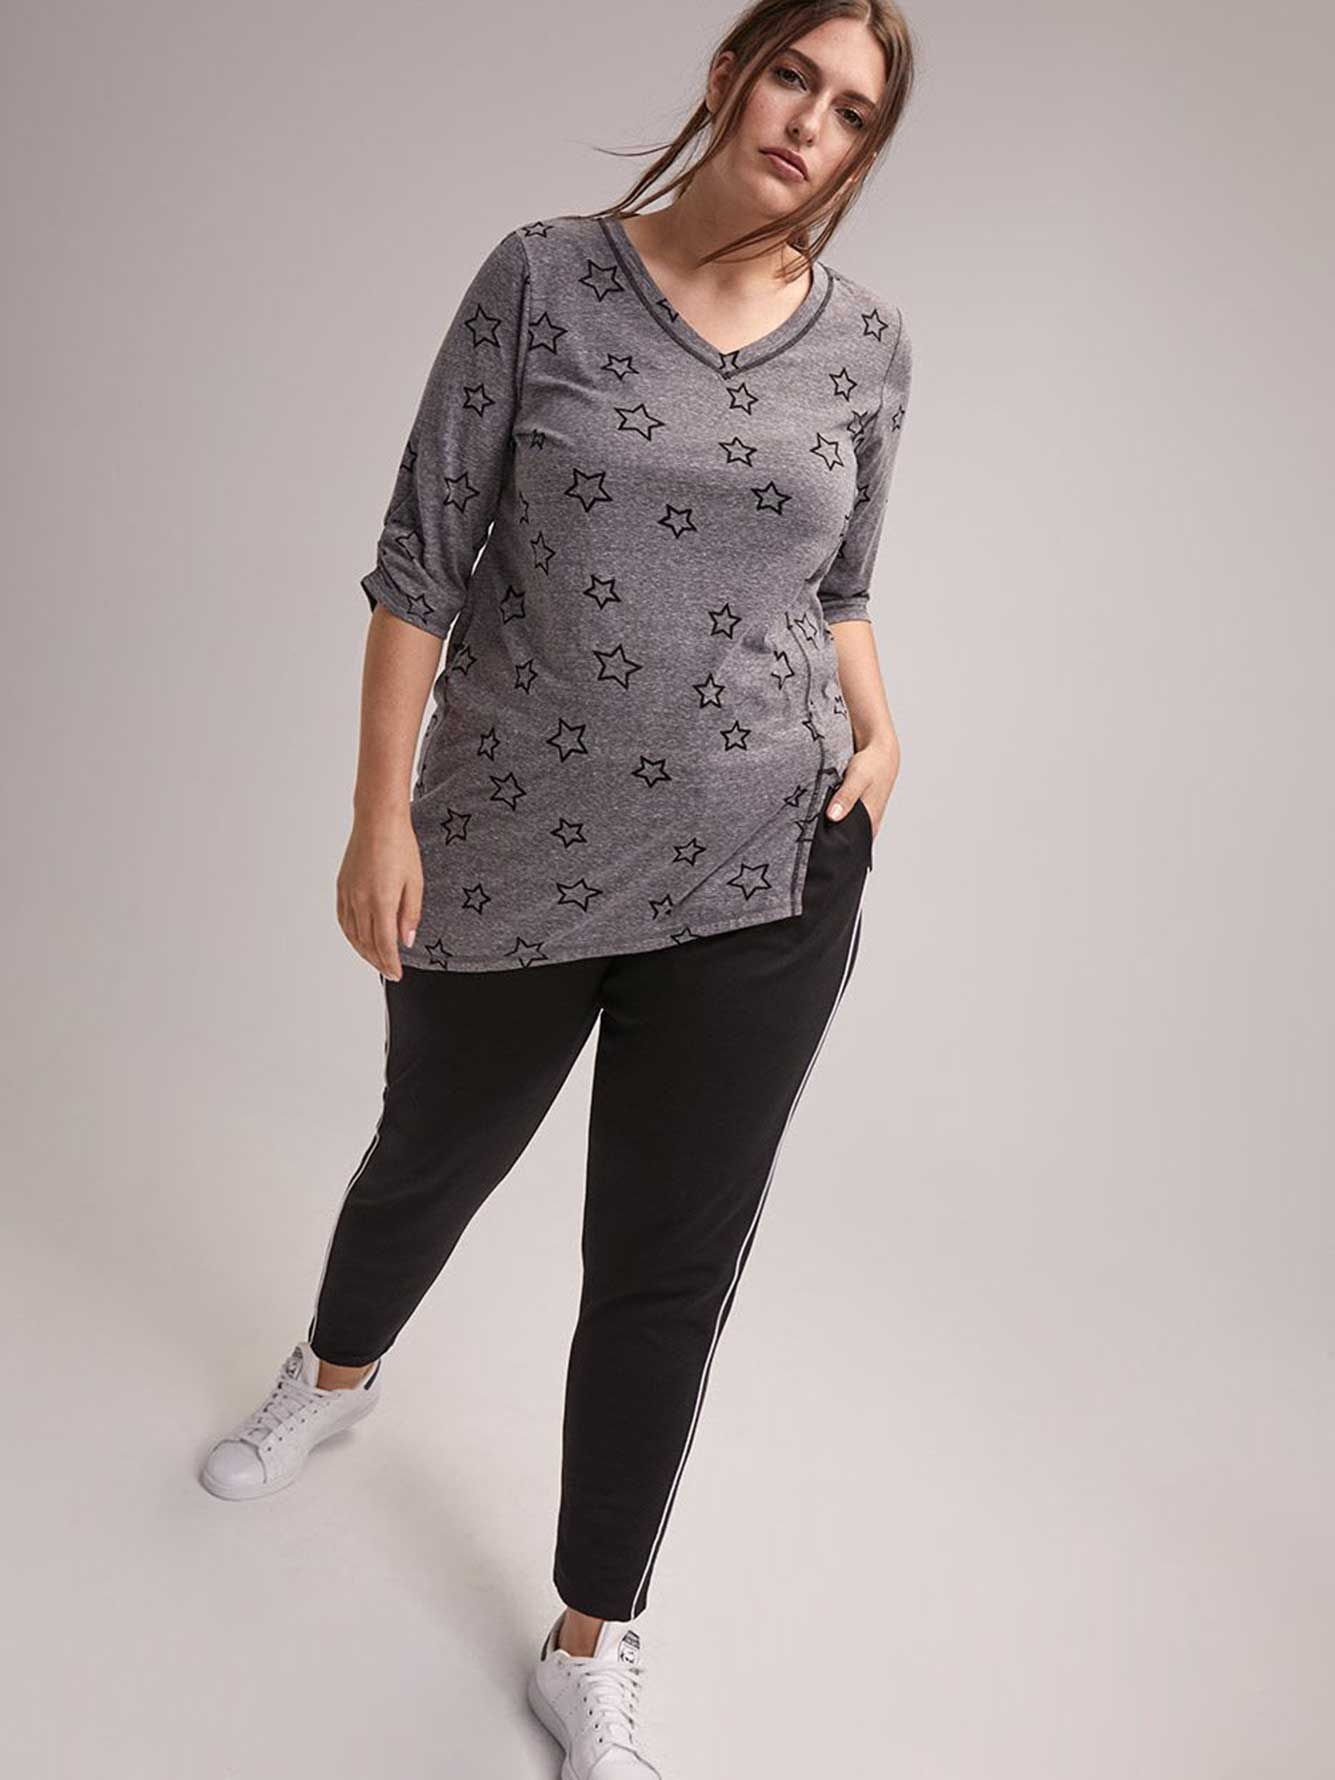 Printed Plus Size 3/4 Sleeve Tee - ActiveZone